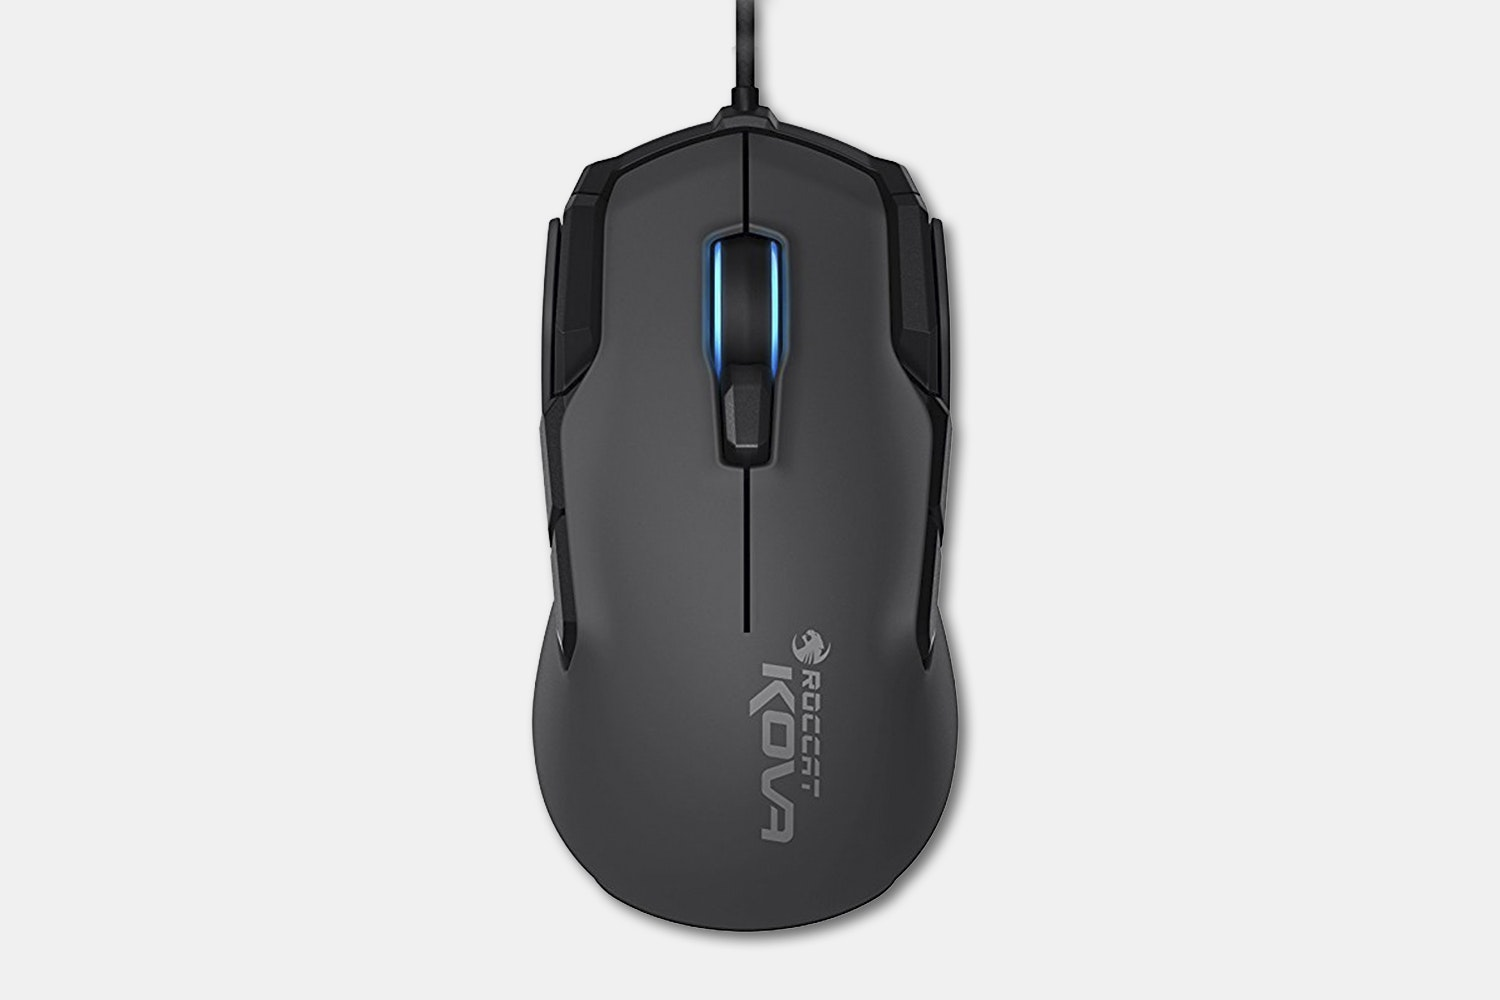 Kova Mouse - Black Kova (- $23)